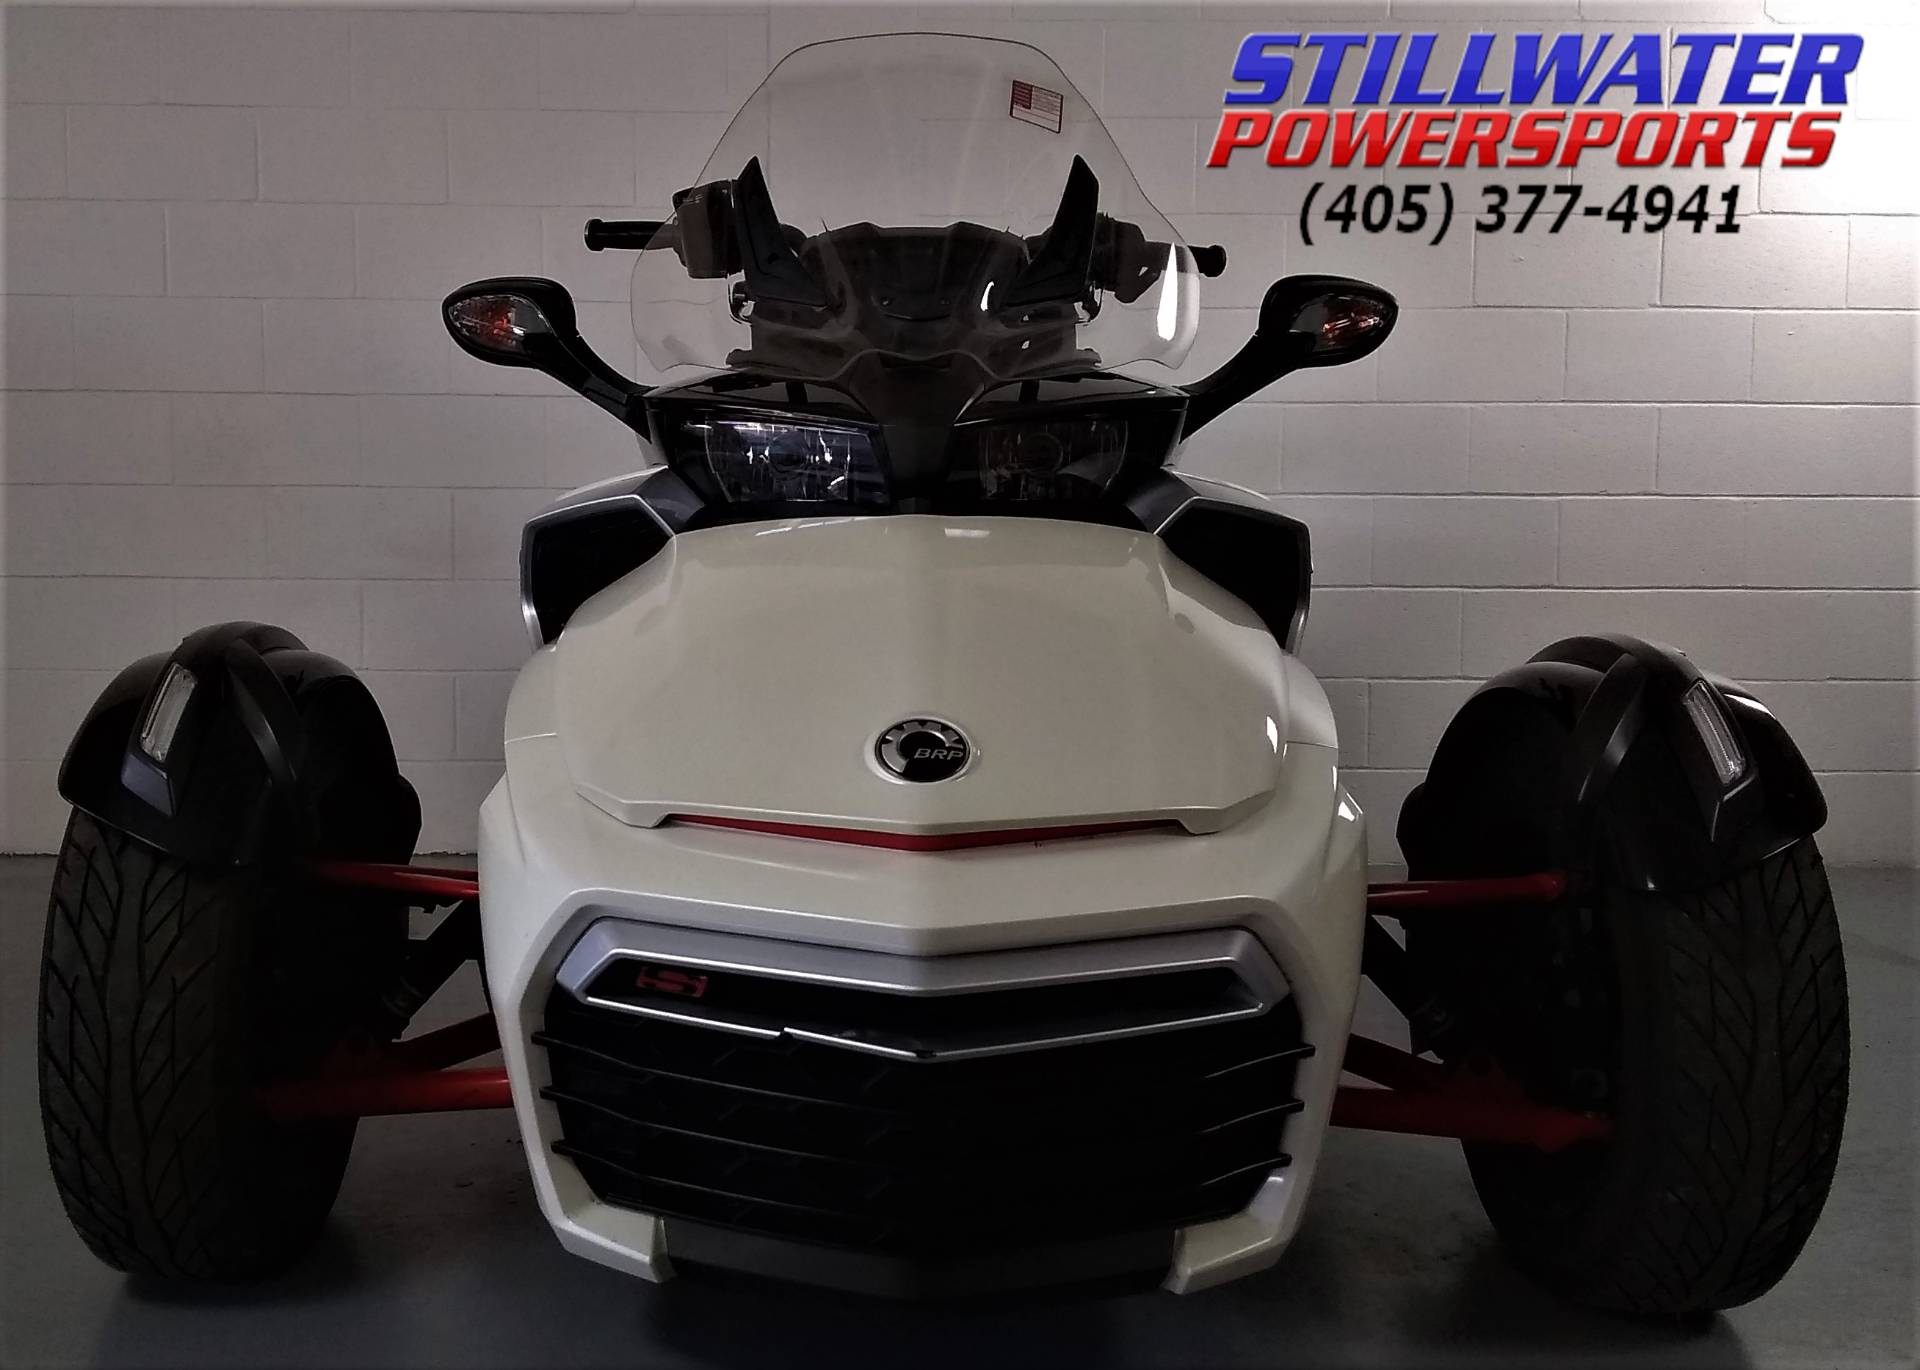 2015 Can-Am Spyder® F3-S SE6 in Stillwater, Oklahoma